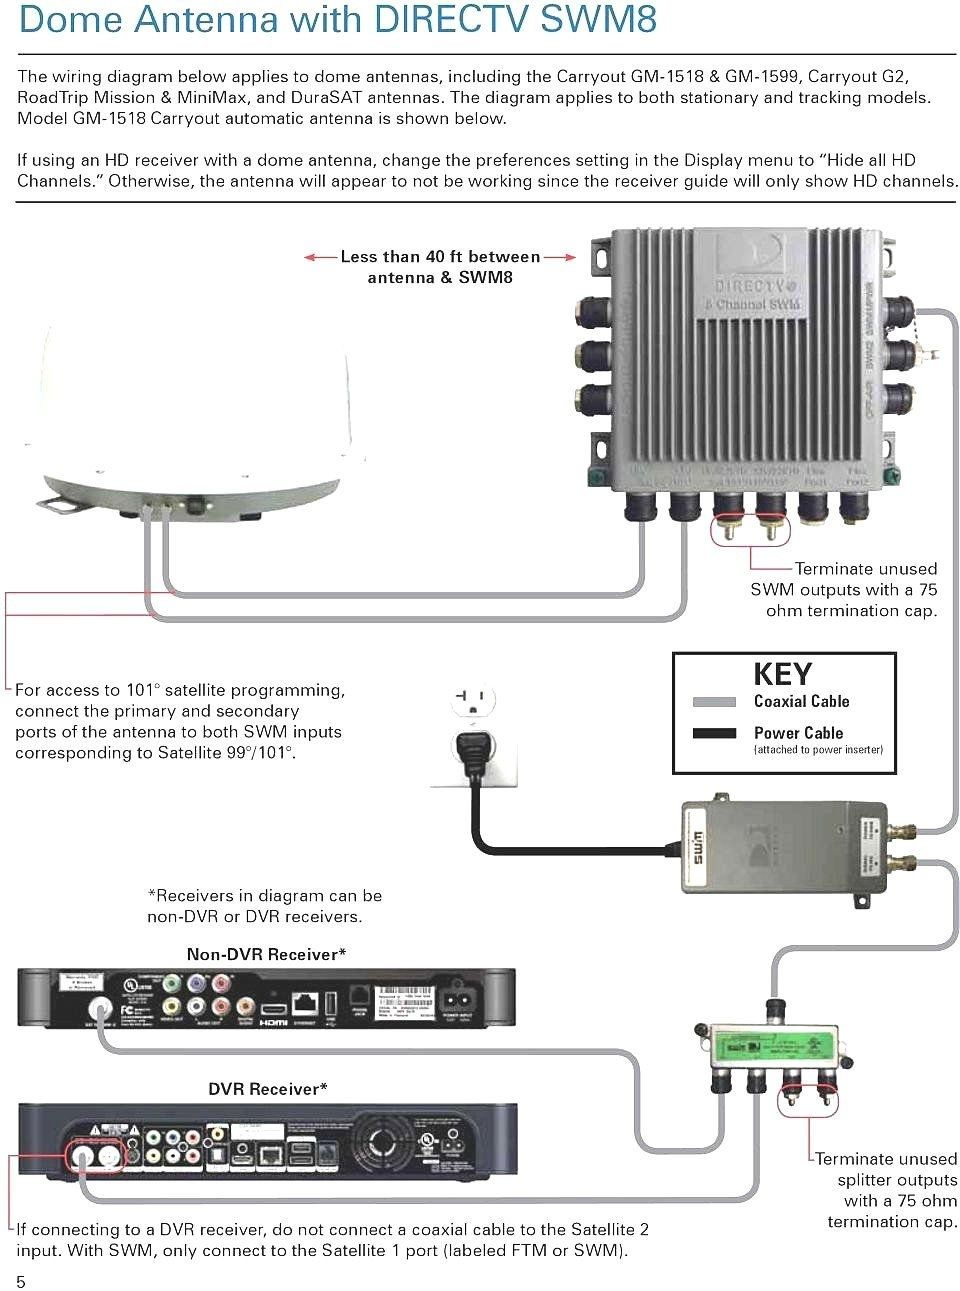 medium resolution of direct tv wiring diagram blurts me pleasing directv swm 16 lovelydirect tv wiring diagram blurts me